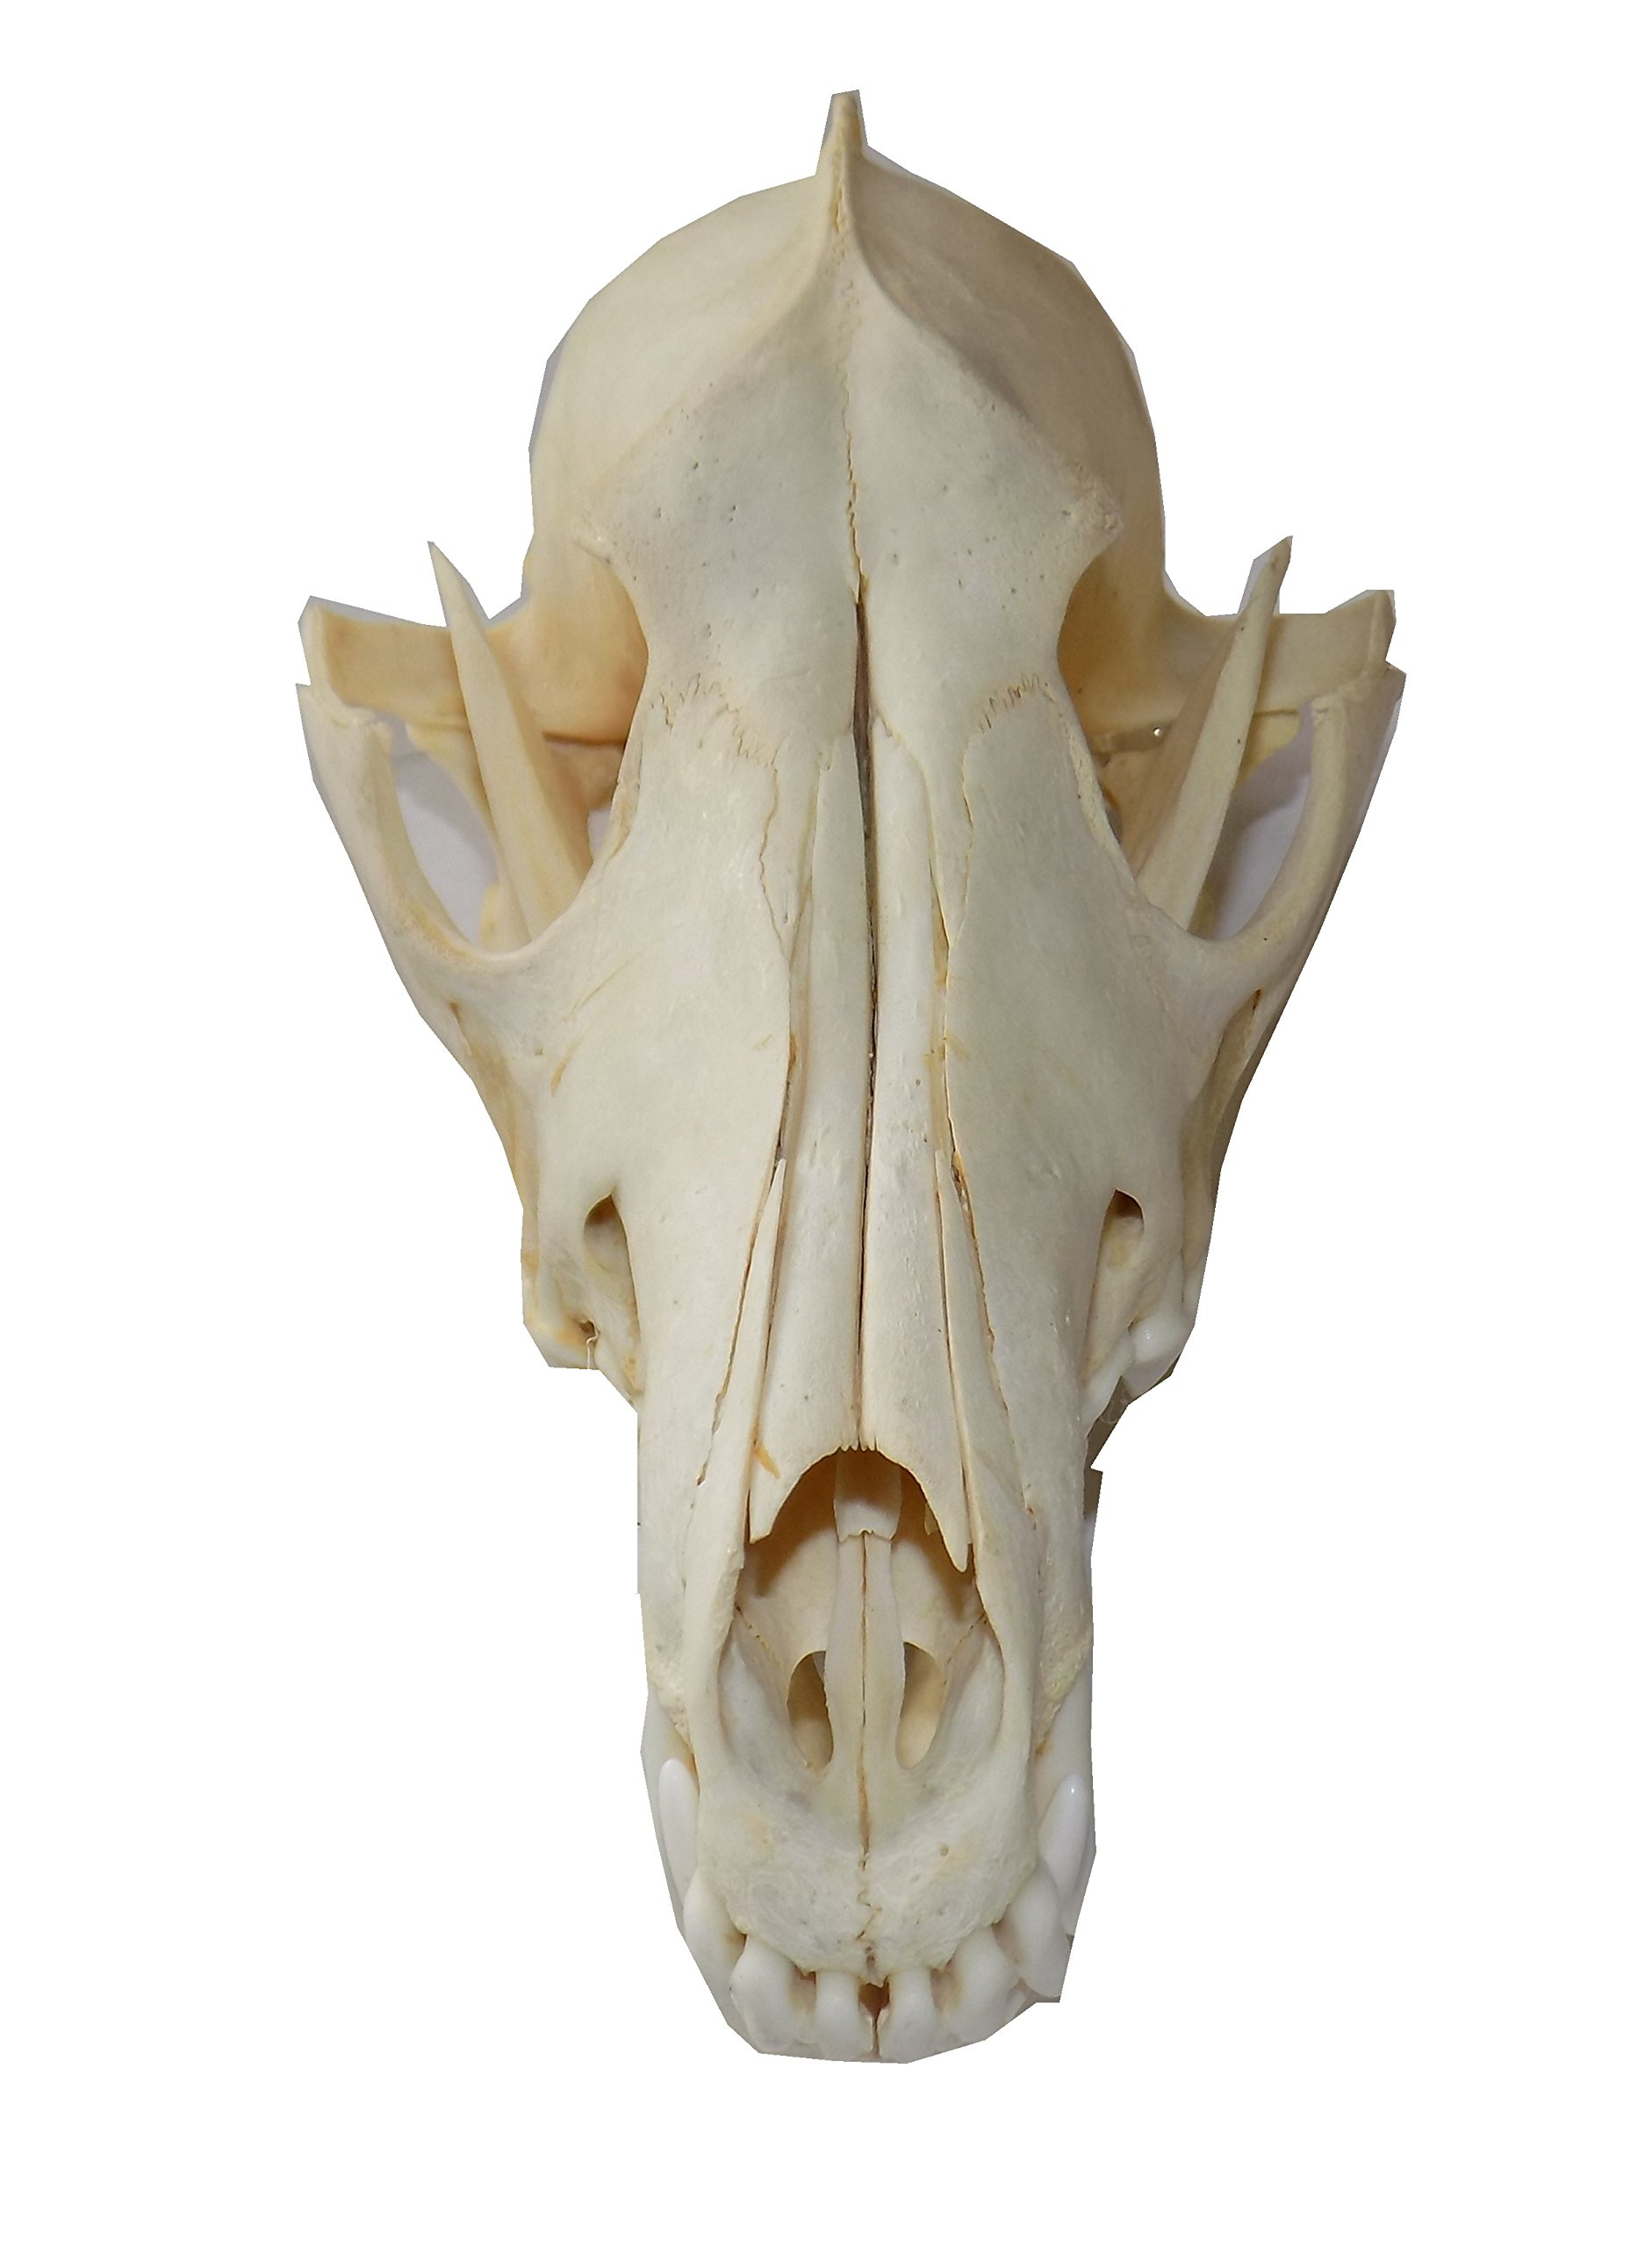 Real Coyote Skull (Cleaned and Assembled Adult American Coyote Skull) by LoneAlaskanGypsy (Image #2)